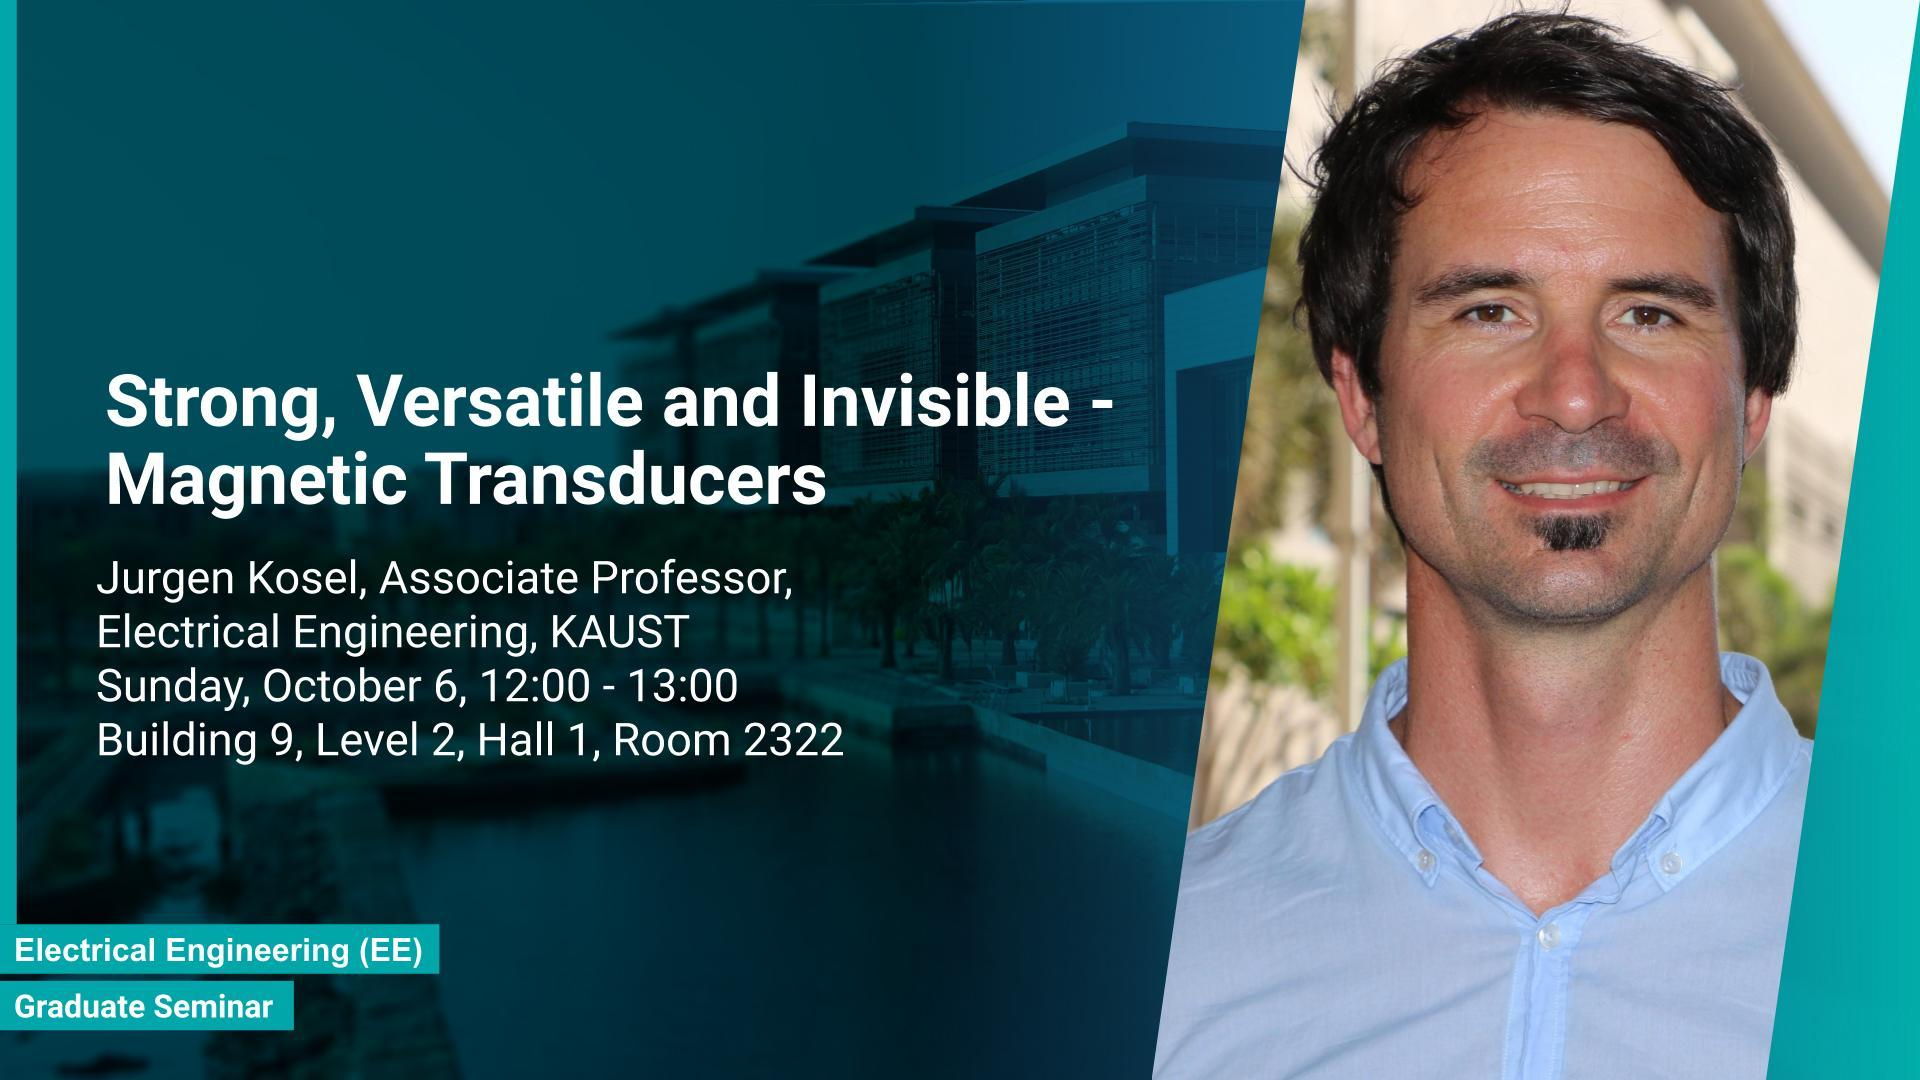 KAUST CEMSE CS Graduate Seminar Jurgen Kosel Strong Versatile and Invisible Magnetic Transducers